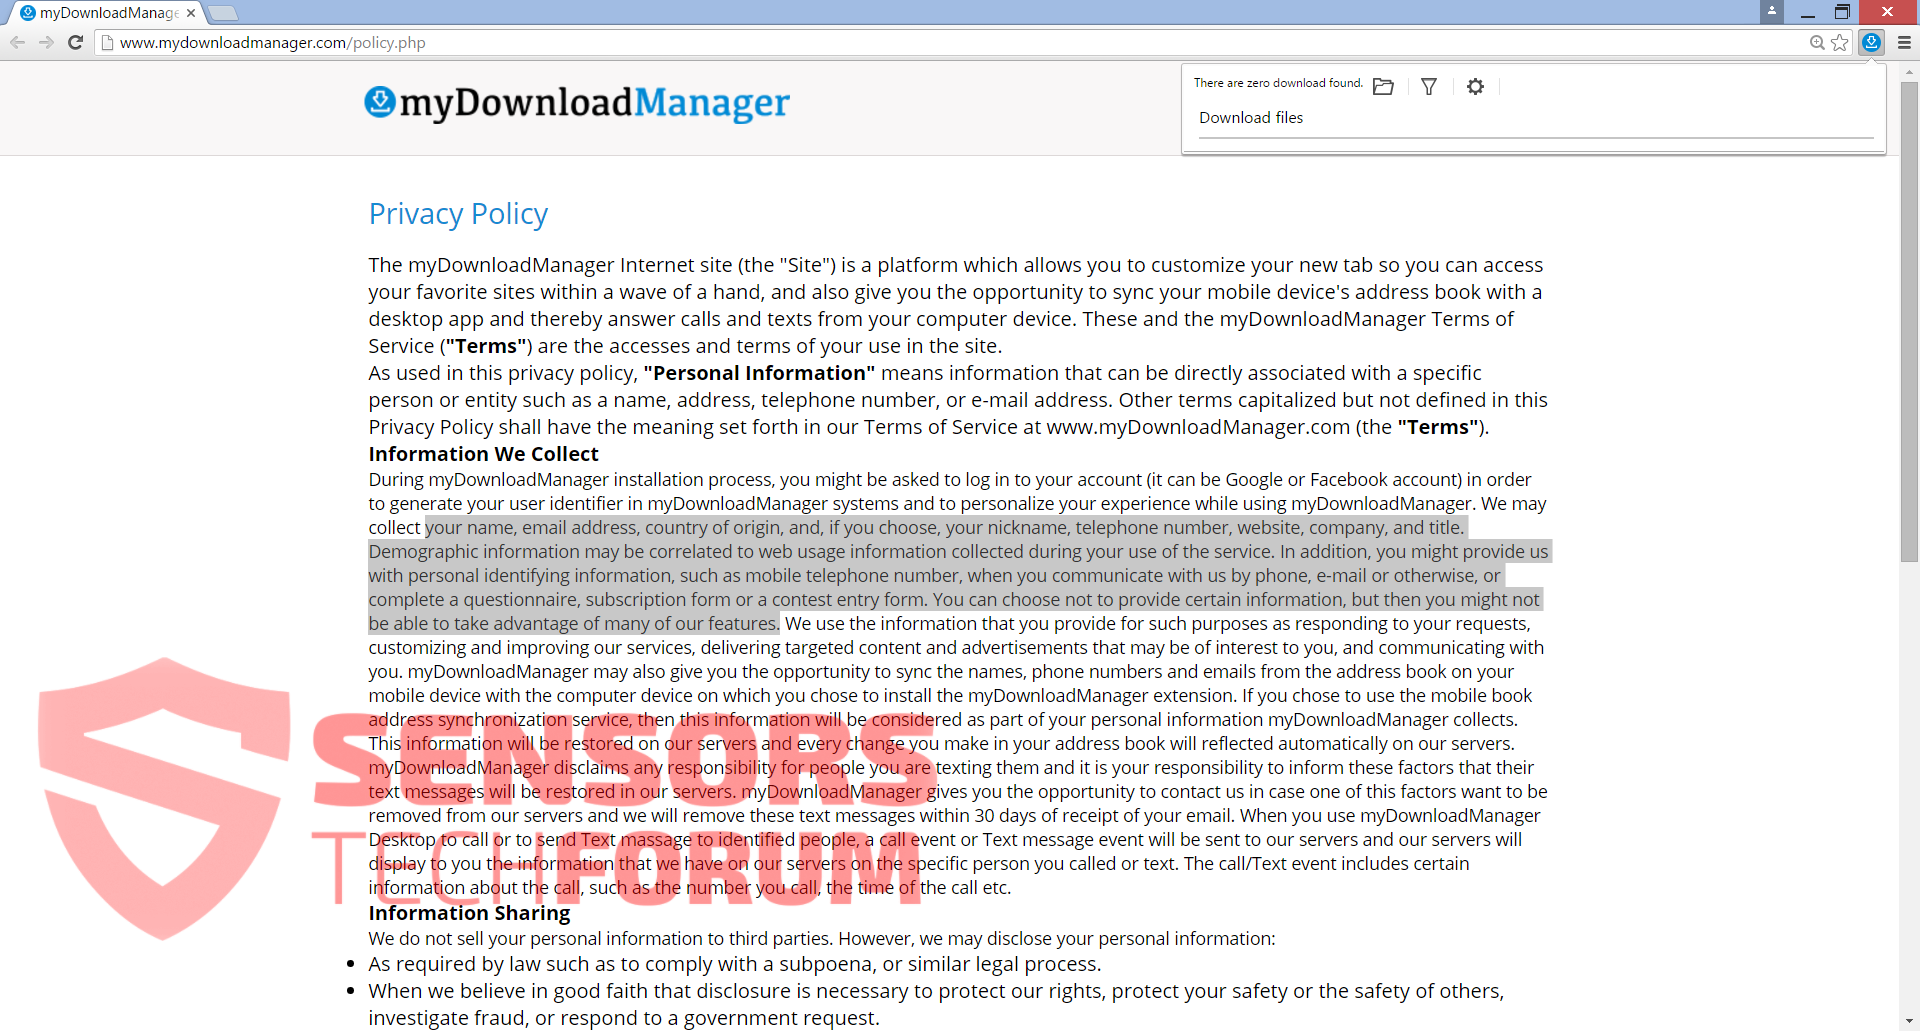 STF-myDownloadManager-my-download-manager-privacy-policy